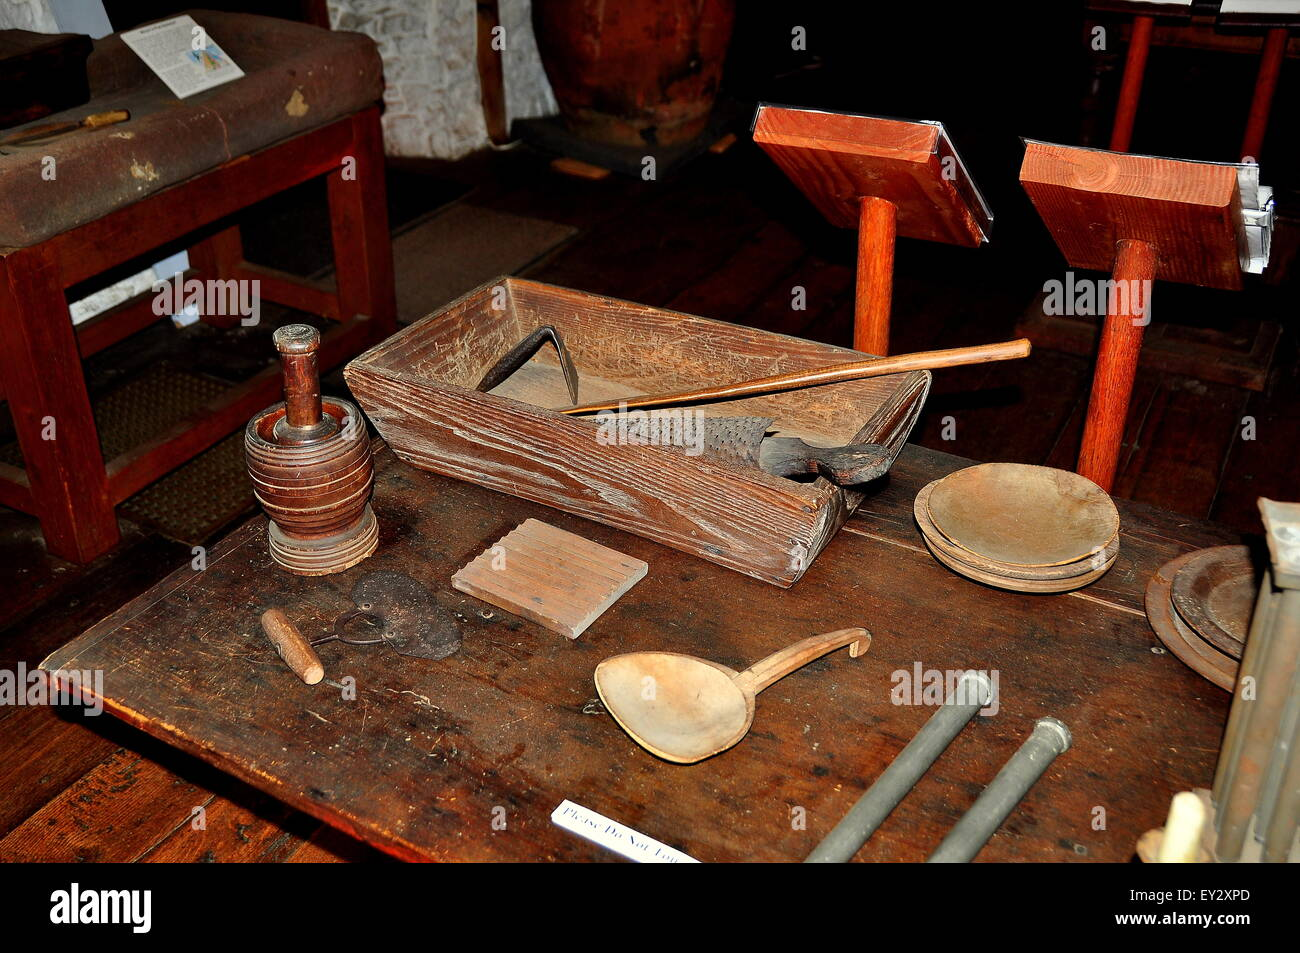 Guilford, Connecticut:  17th century kitchen utensils displayed on a table at the historic 1639 Henry Whitfield - Stock Image